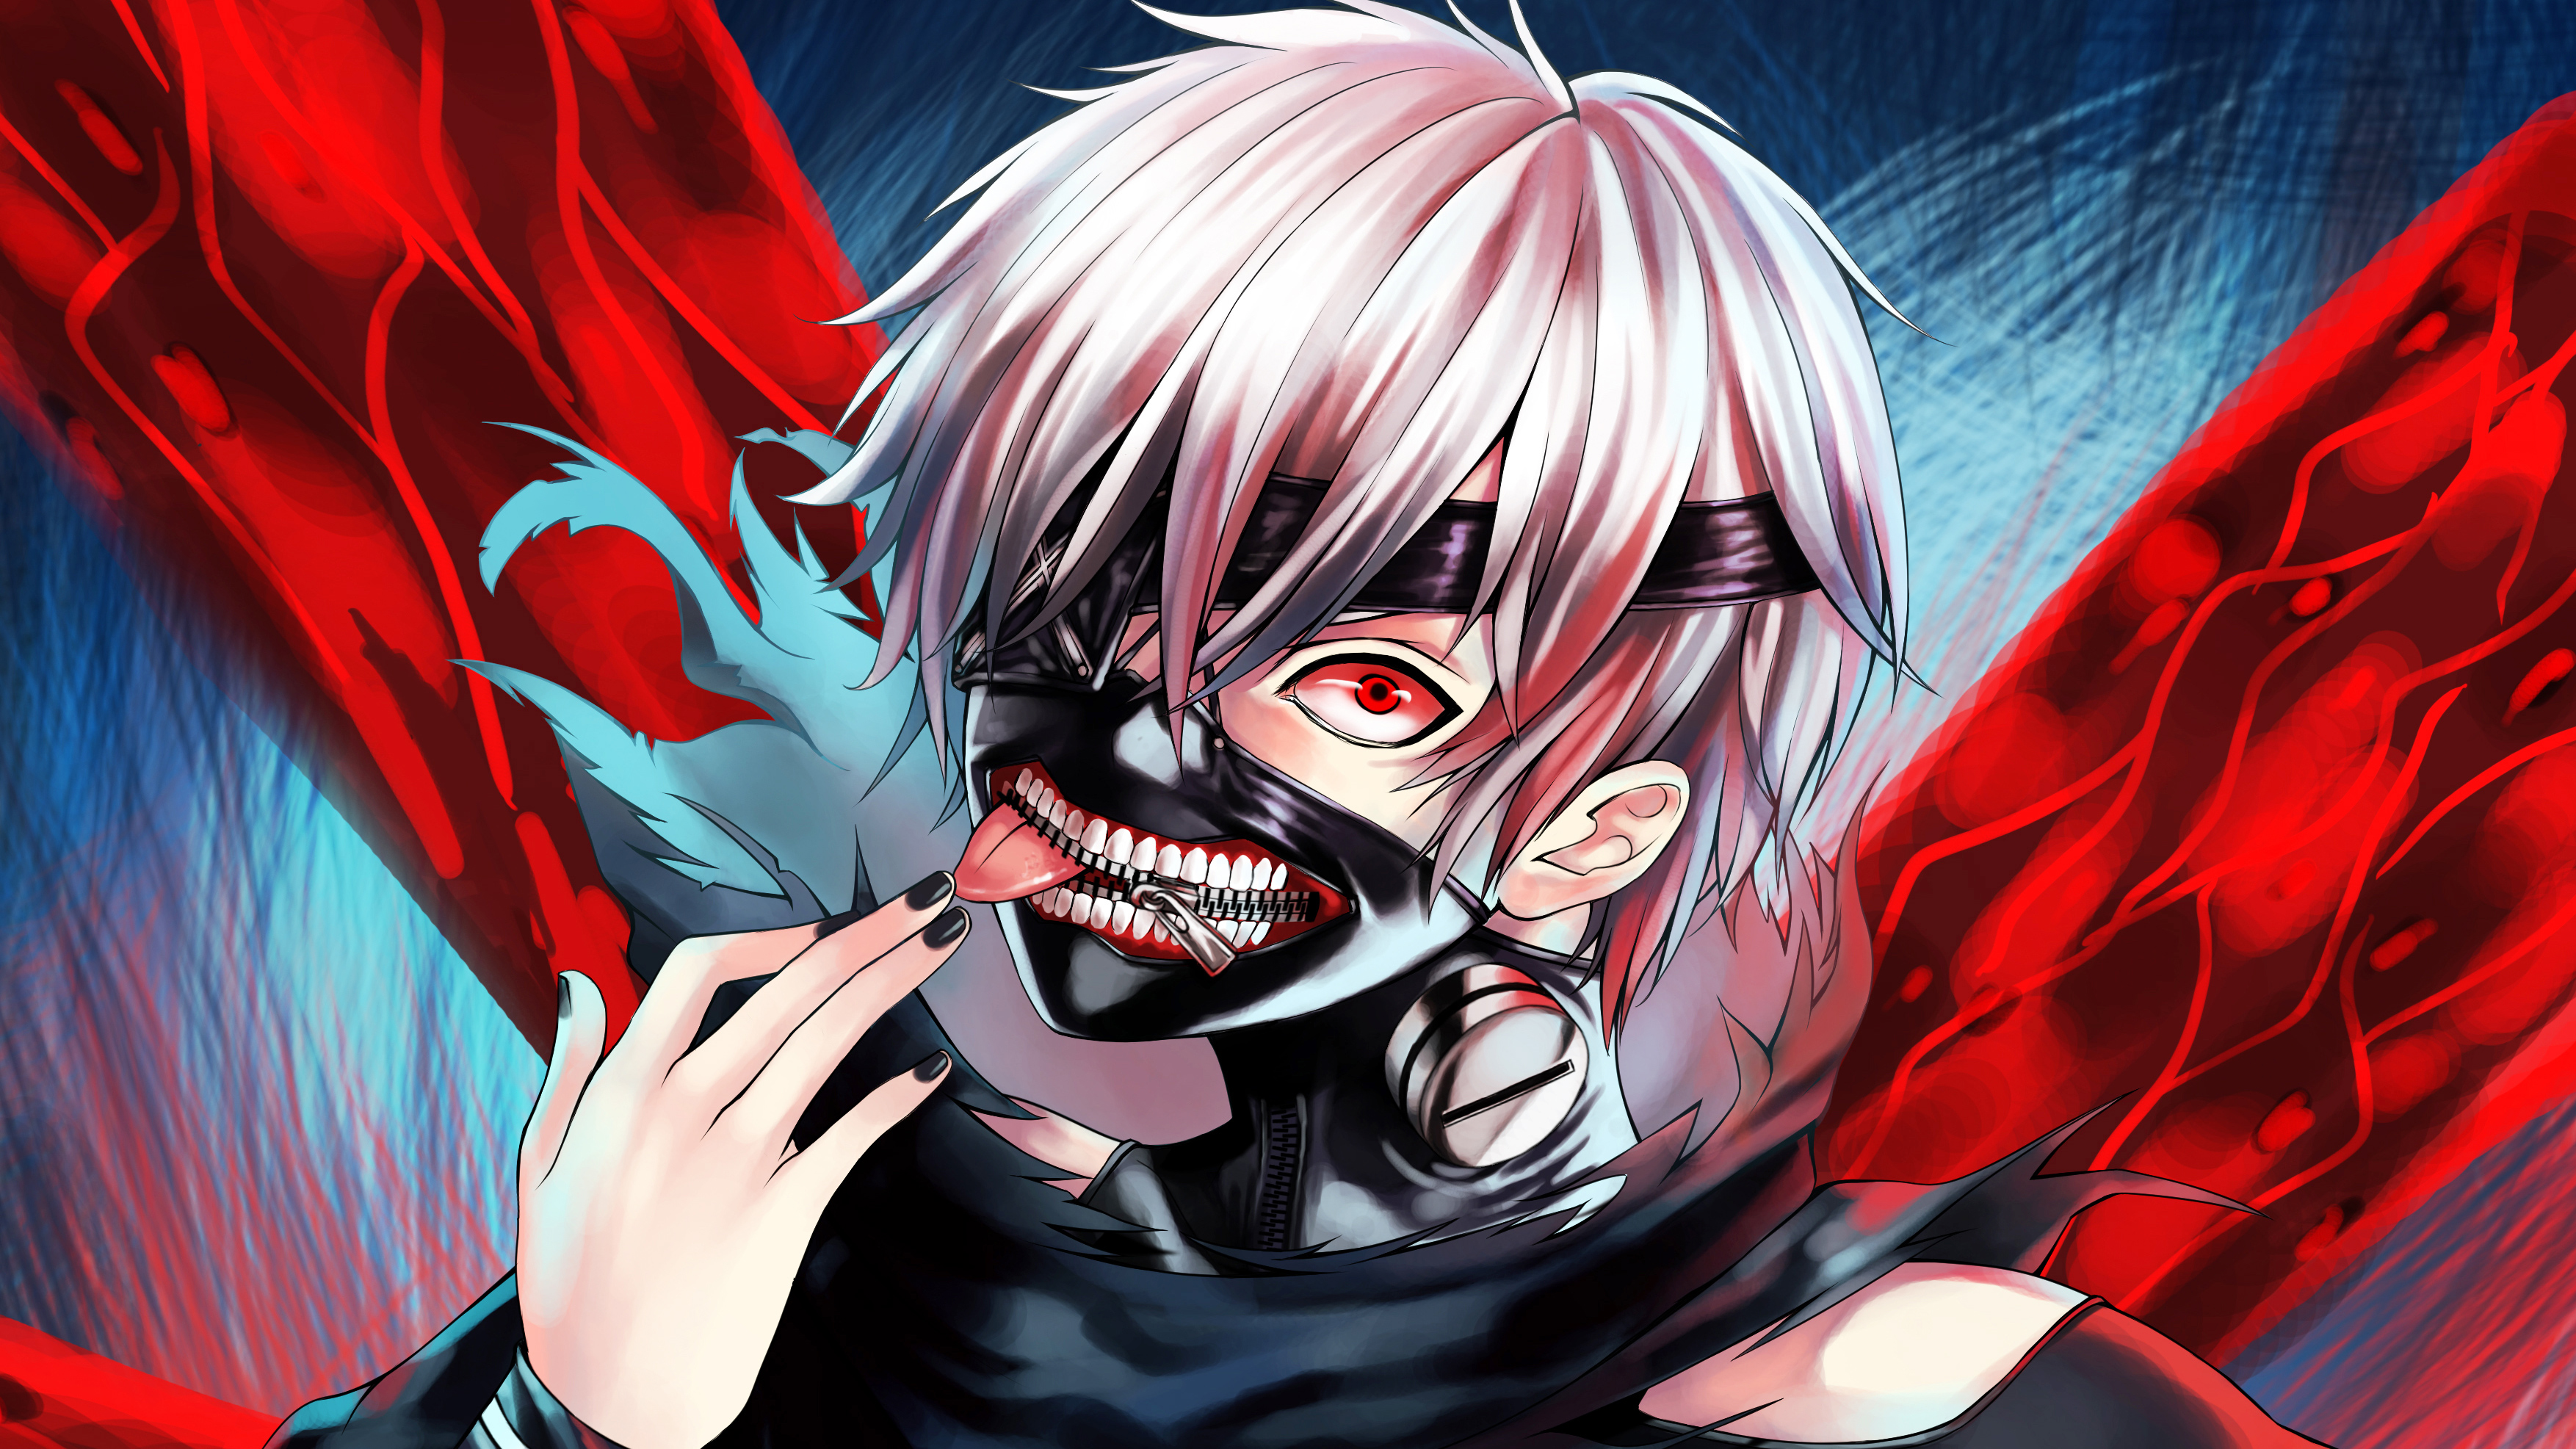 Tokyo Ghoul Anime 4k, HD Anime, 4k Wallpapers, Images ...